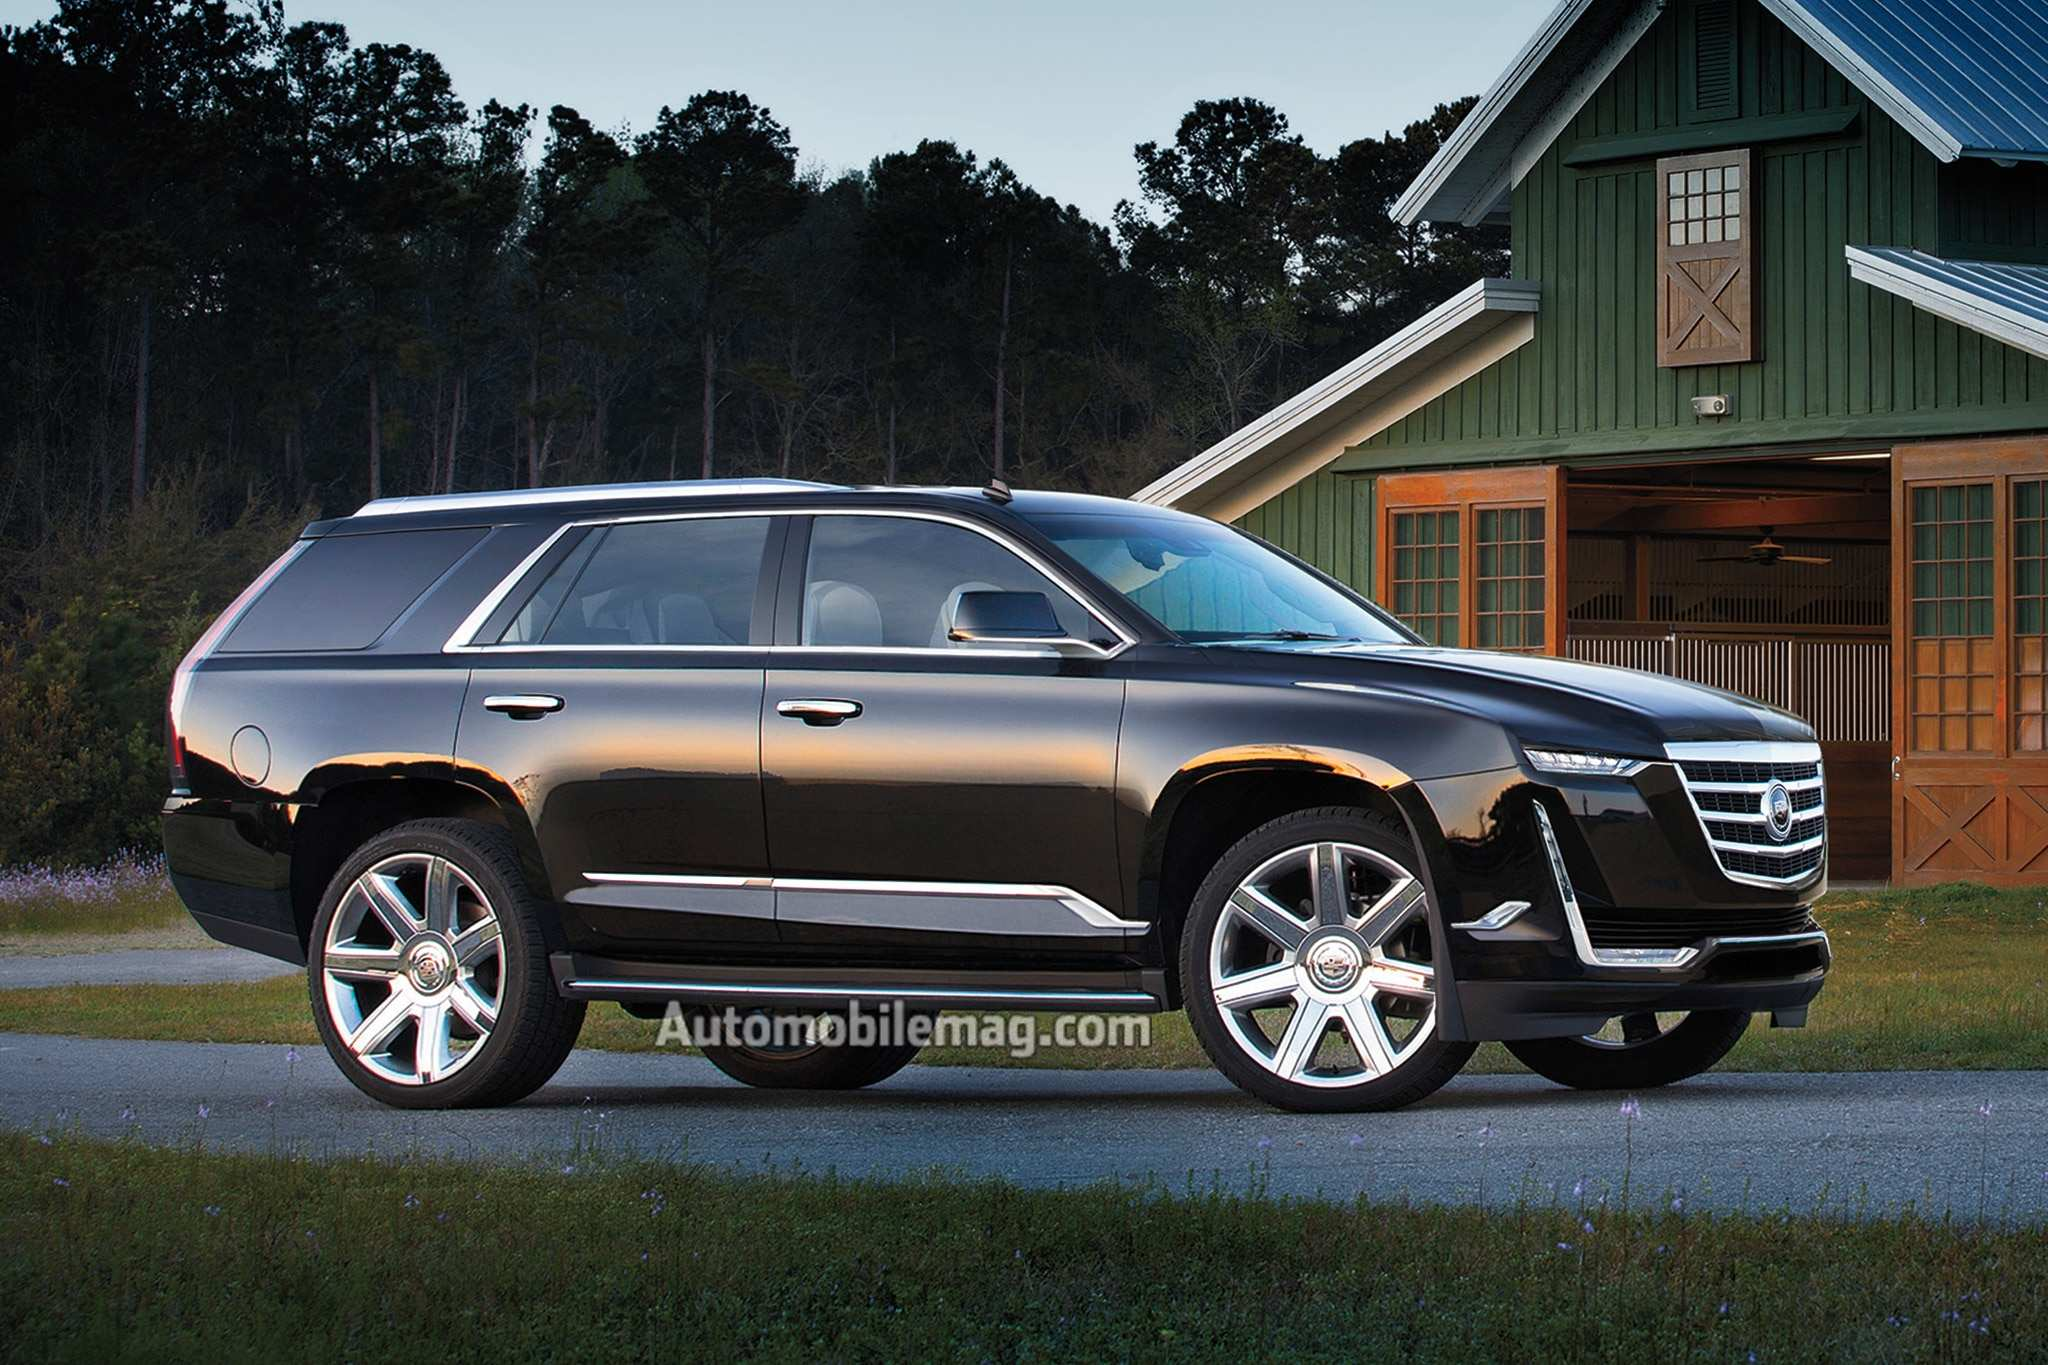 60 Great 2020 Cadillac Escalade Hybrid Overview by 2020 Cadillac Escalade Hybrid